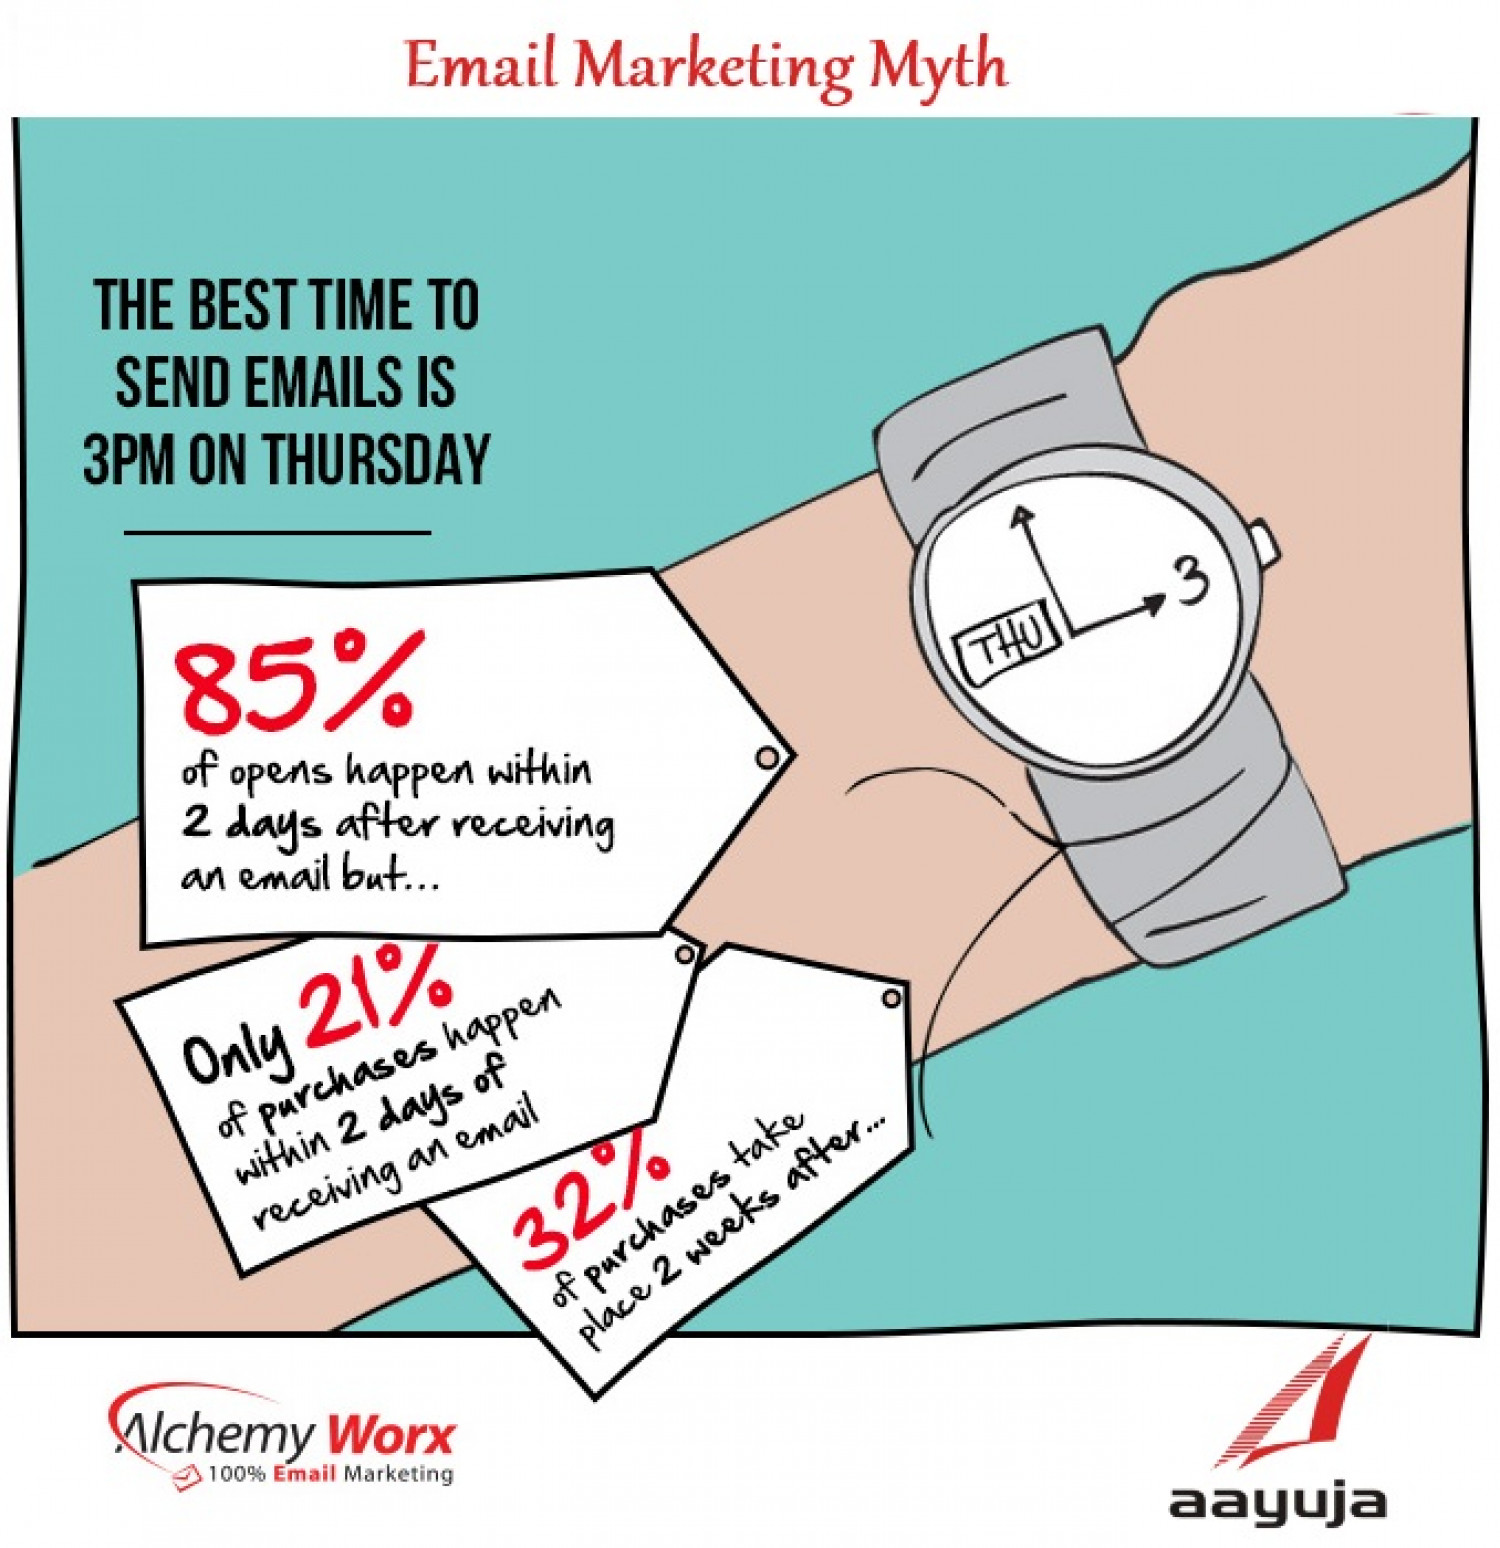 Email Marketing Myth Infographic